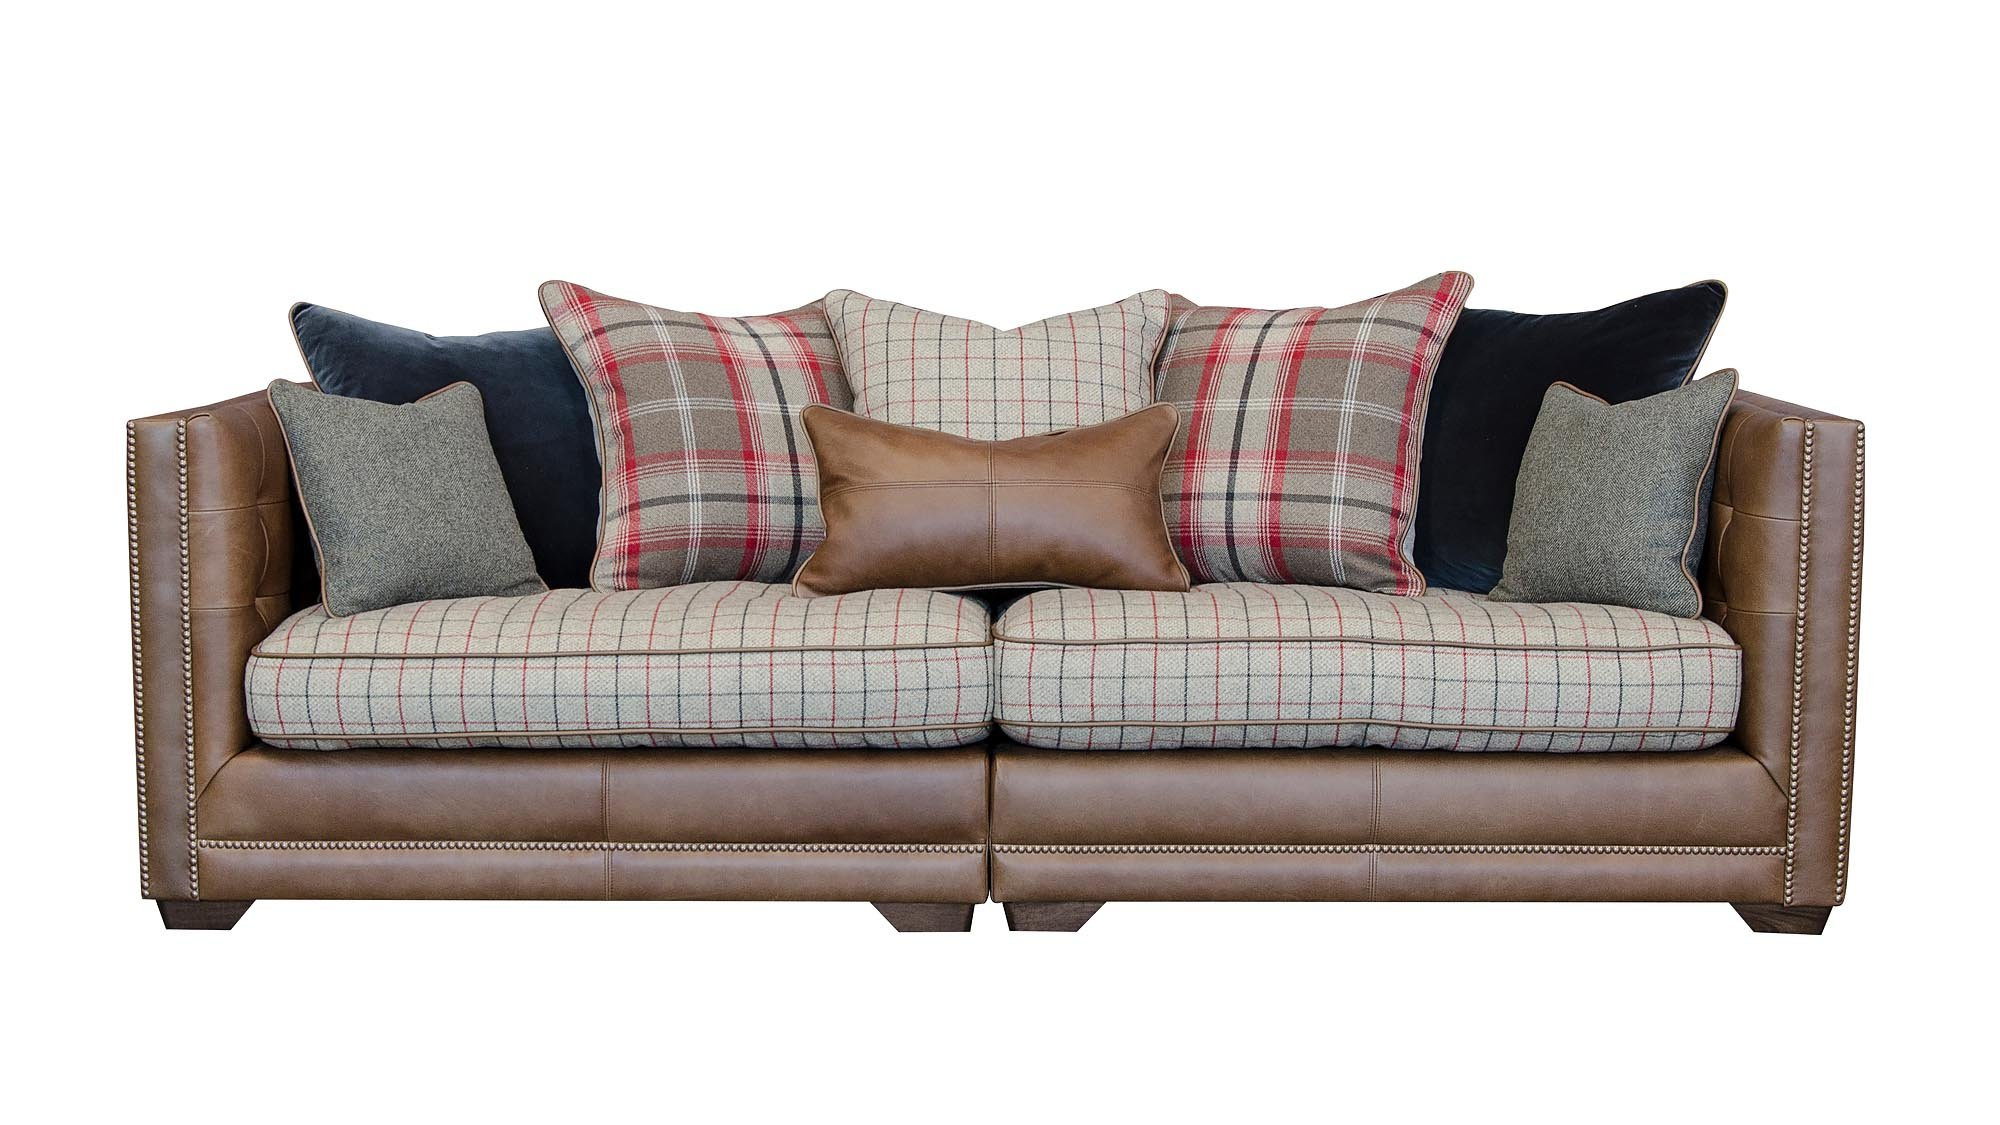 If You Want An Antique Style Sofa For A Period Home Or Cottage But Chesterfield Feels Bit Too Grandiose Then Feast Your Eyes On This Old English